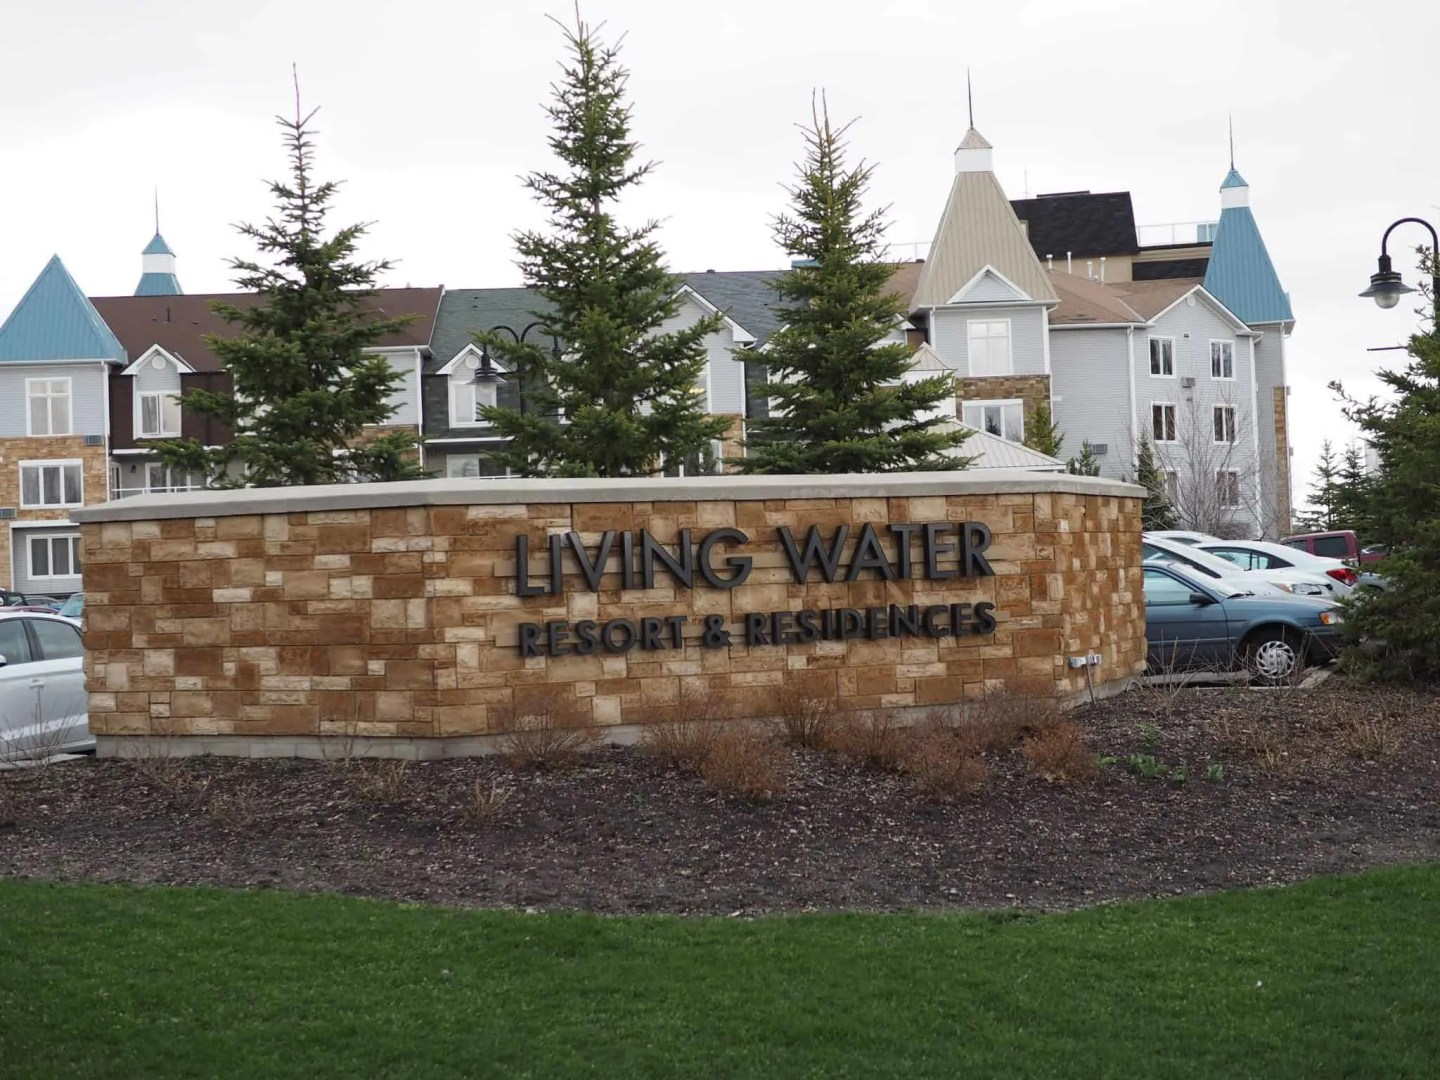 The Ultimate Weekend Getaway – Living Water Resort and Spa